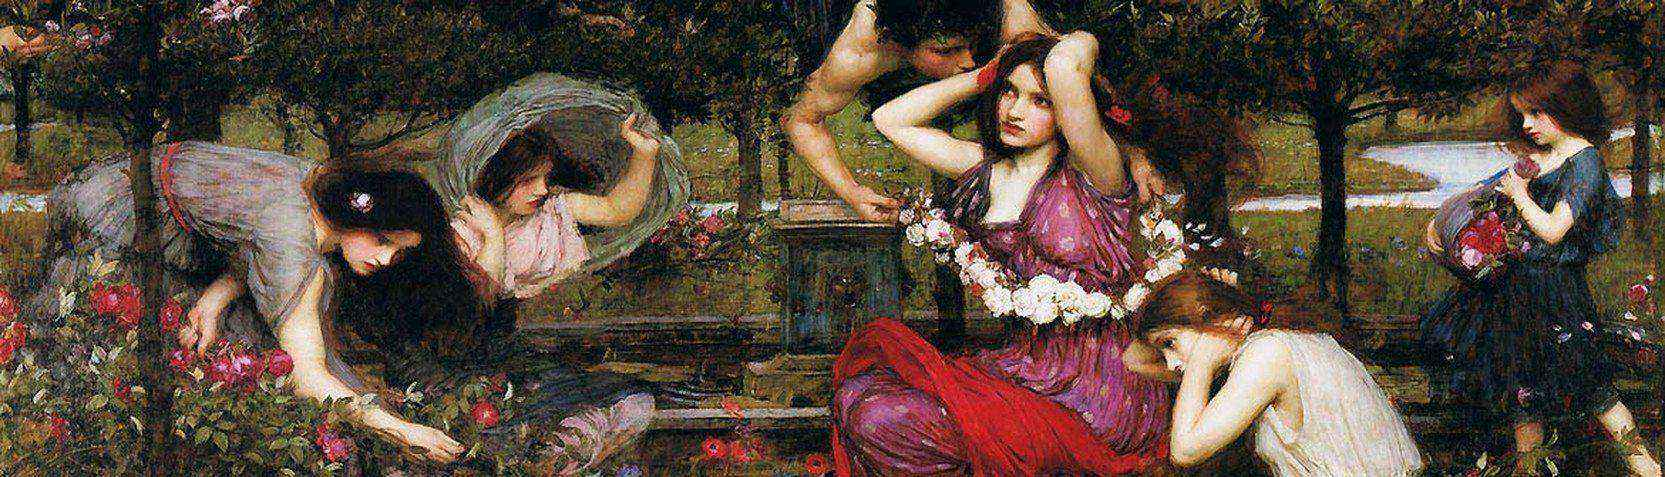 Artyści - John William Waterhouse